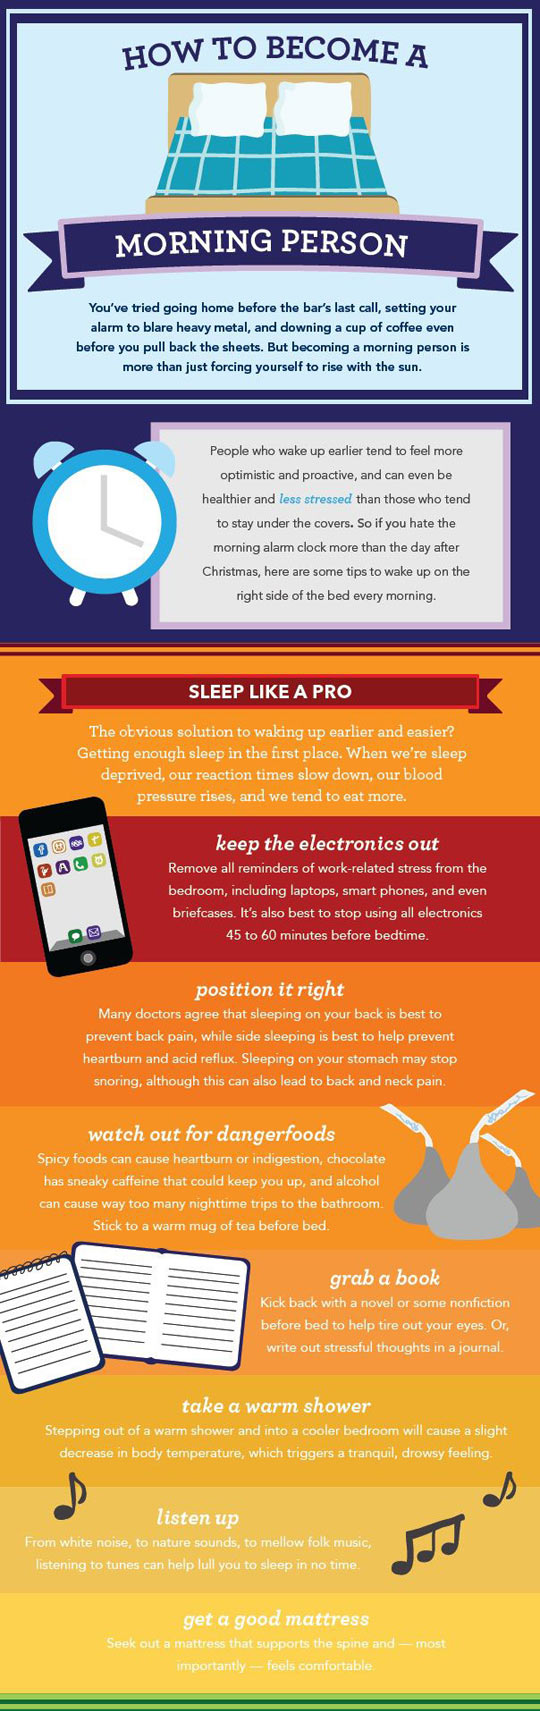 How You Can Become A Morning Person (infographic)